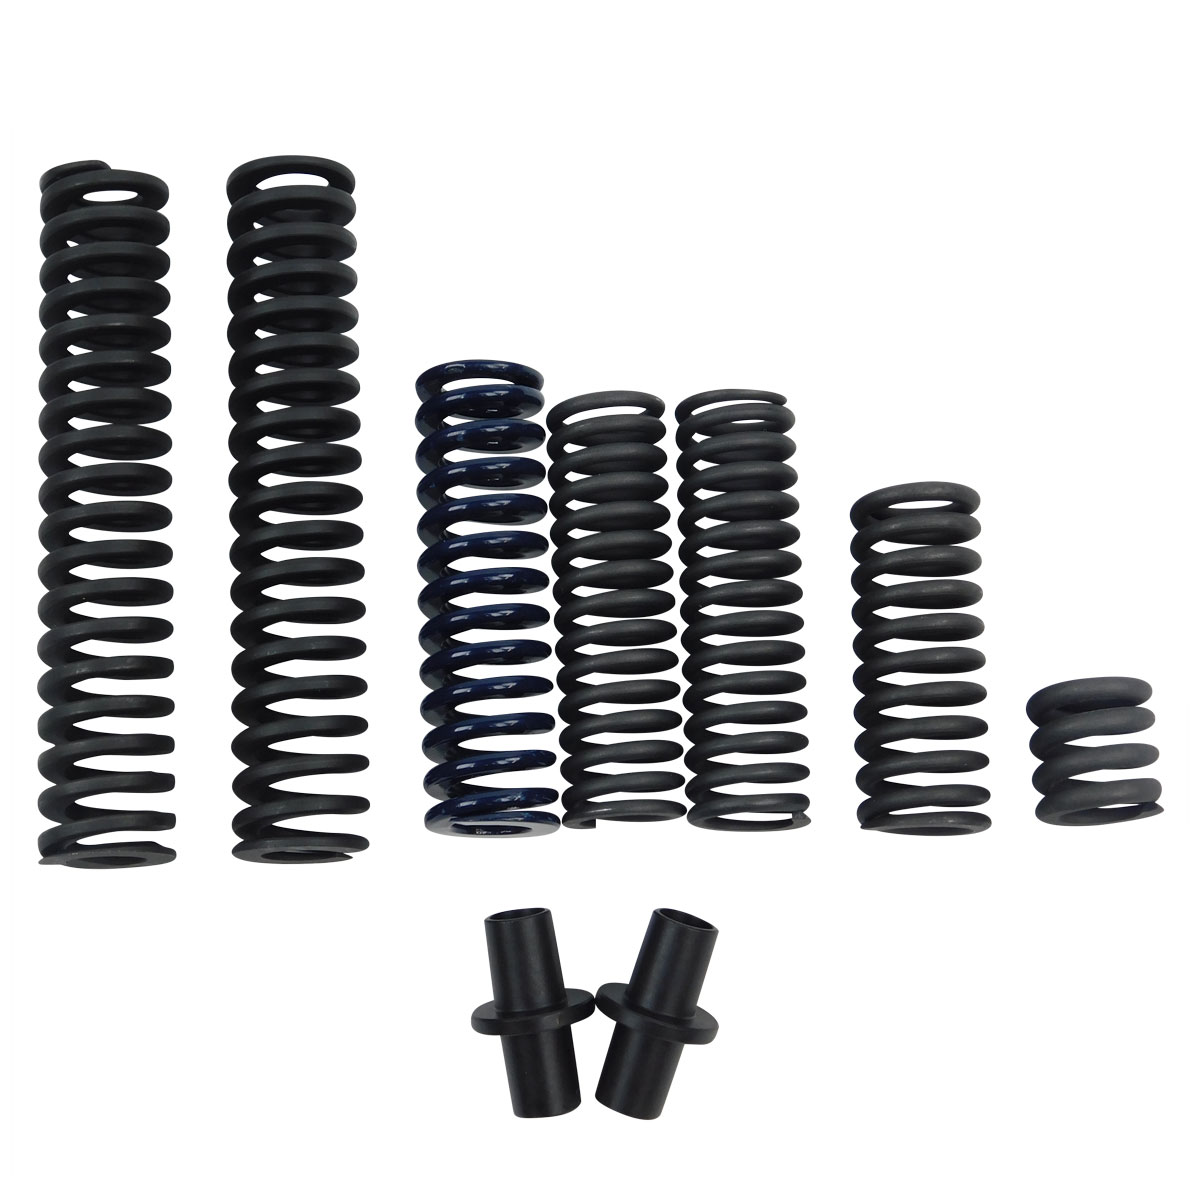 V-Twin Manufacturing Heavy Duty Seat Post Spring Set